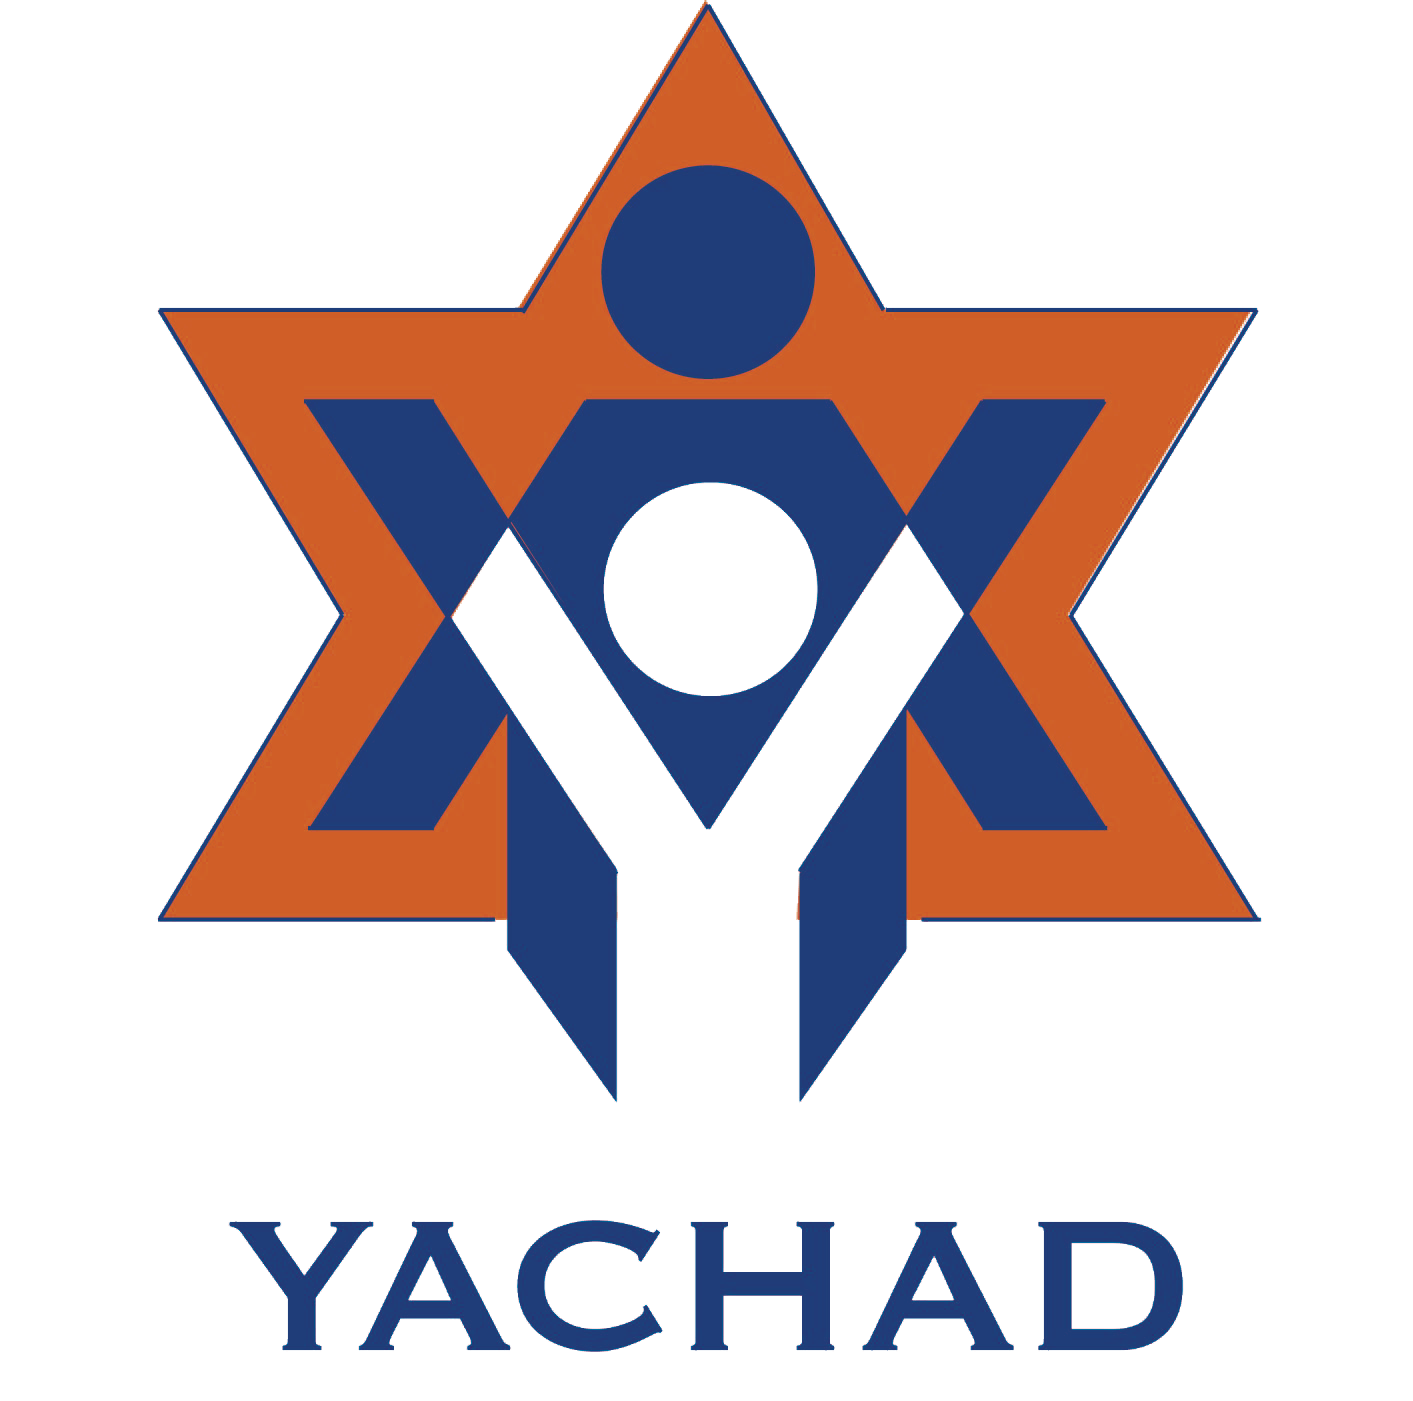 The National Jewish Council for Disabilities logo